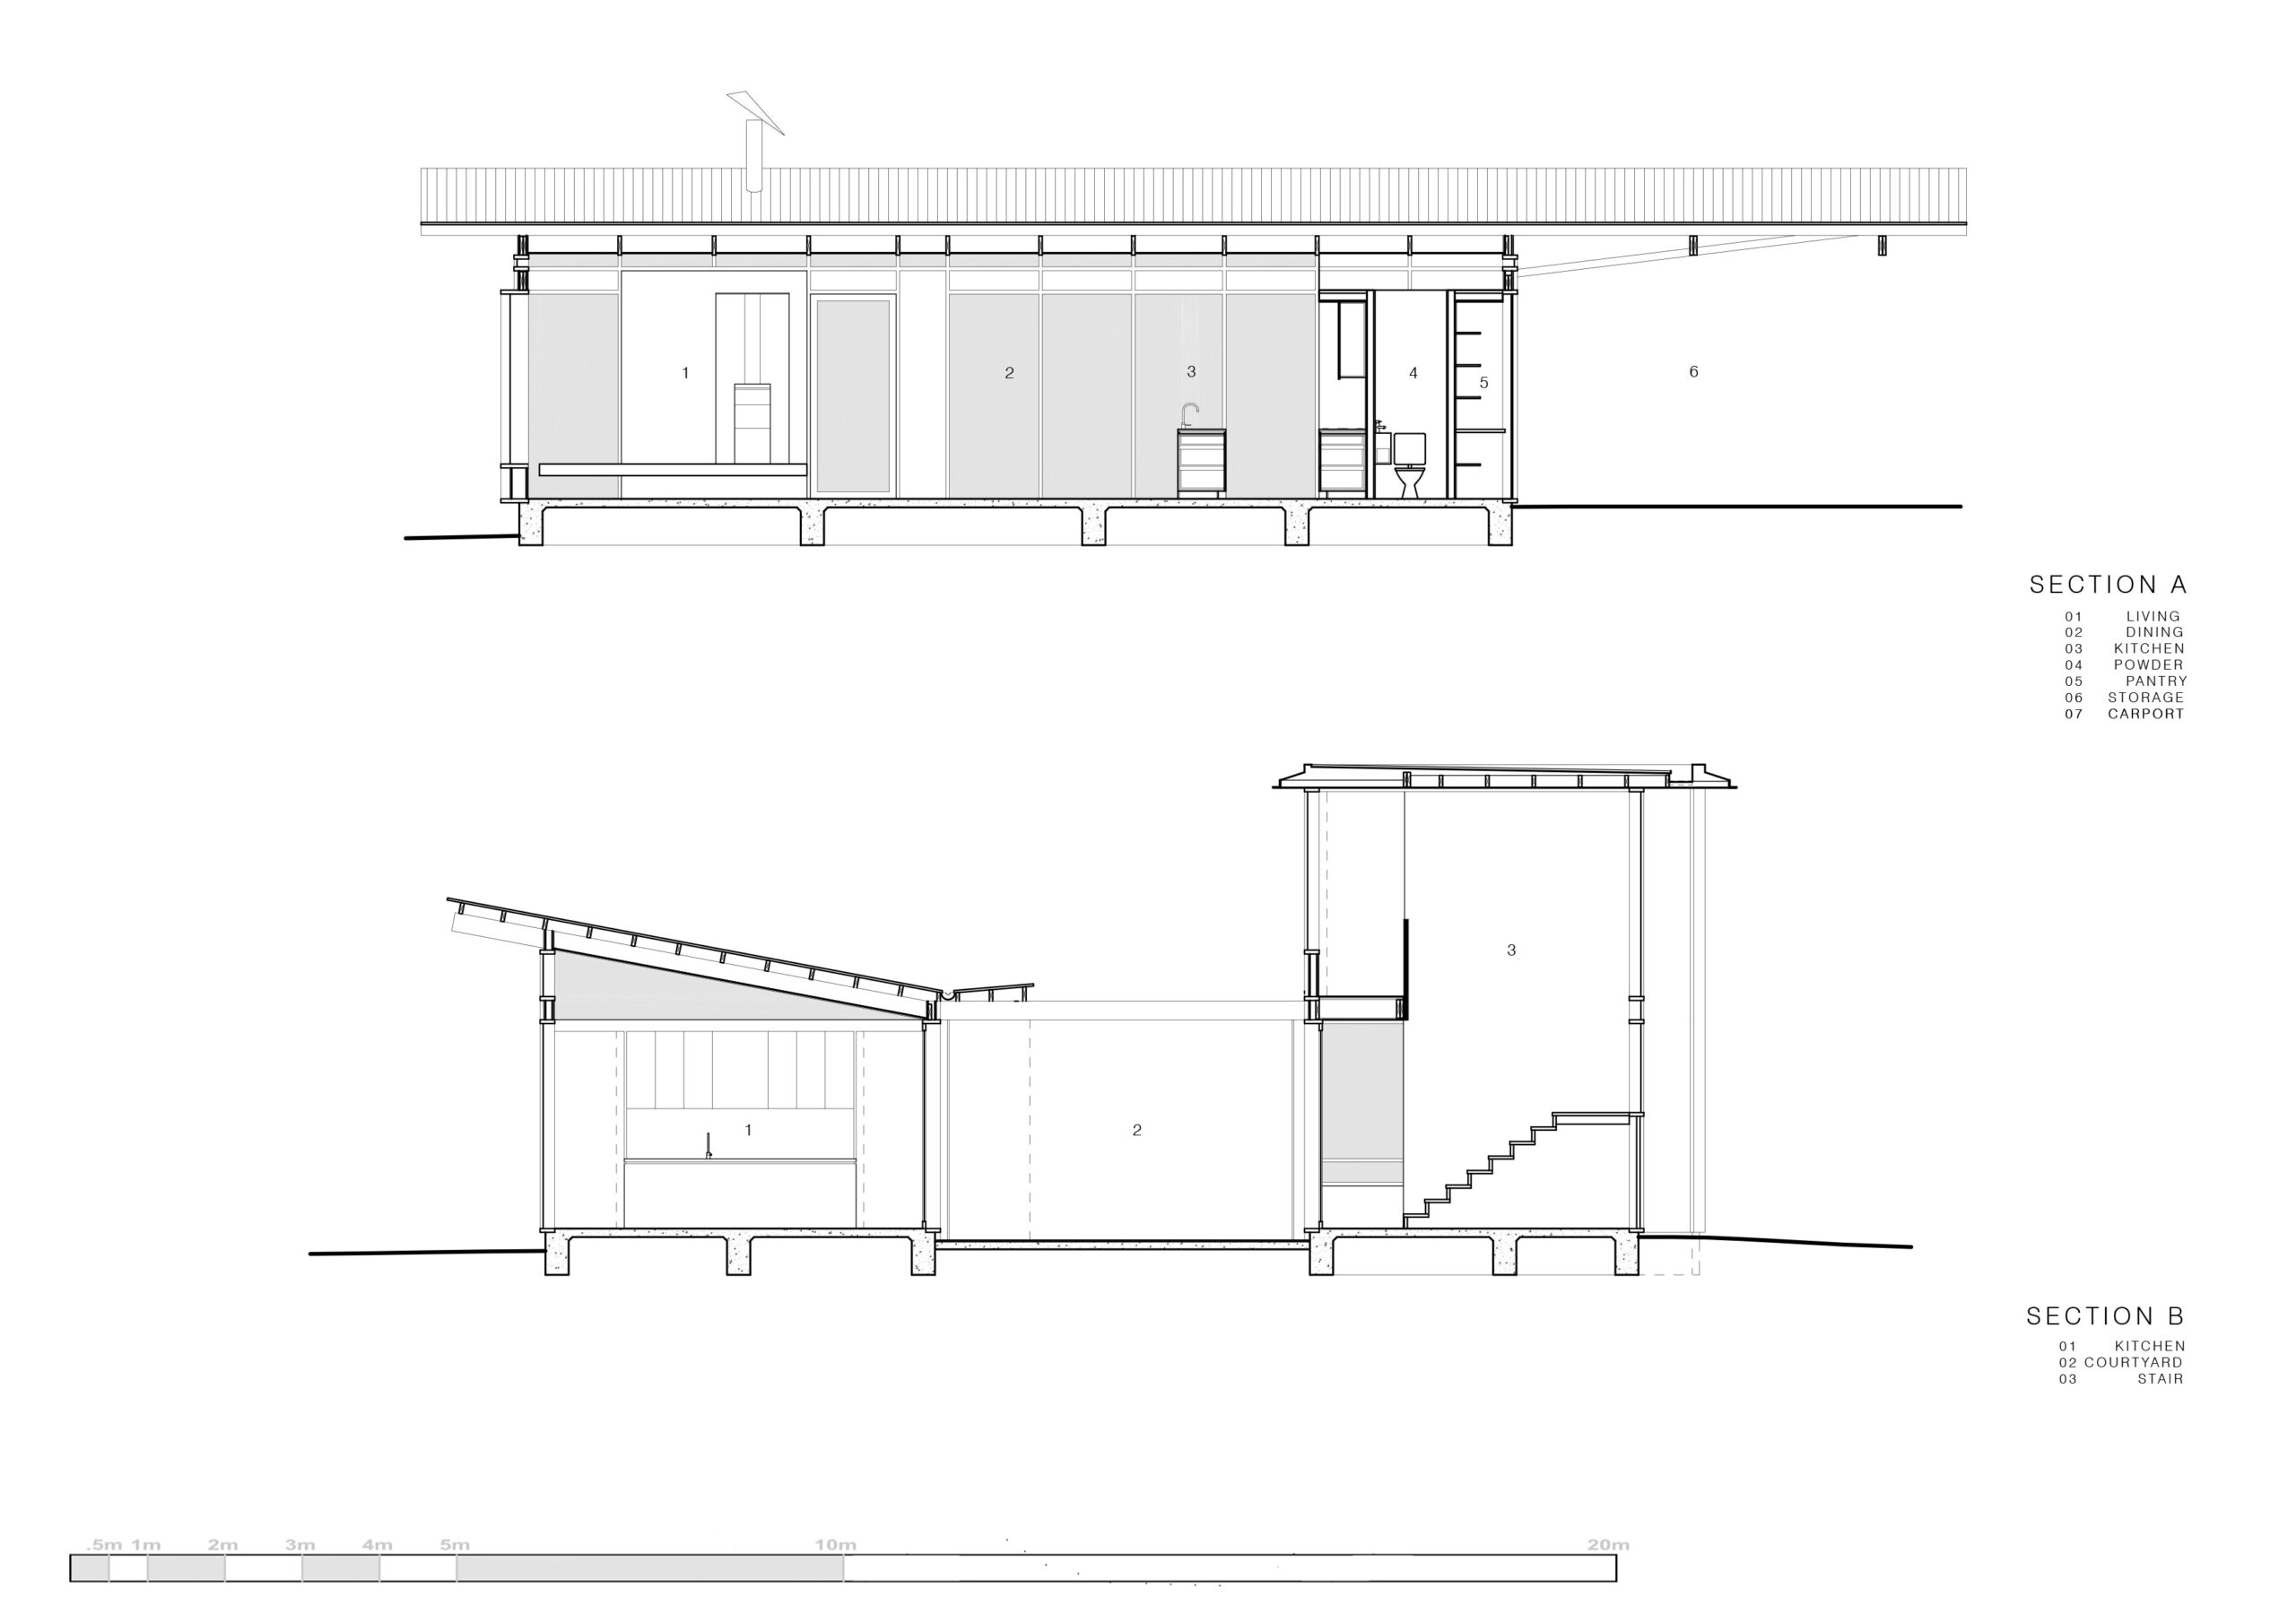 907-resnew_CourtHouse_PeterWinklerArchitects_SectionsAandB_A4_1